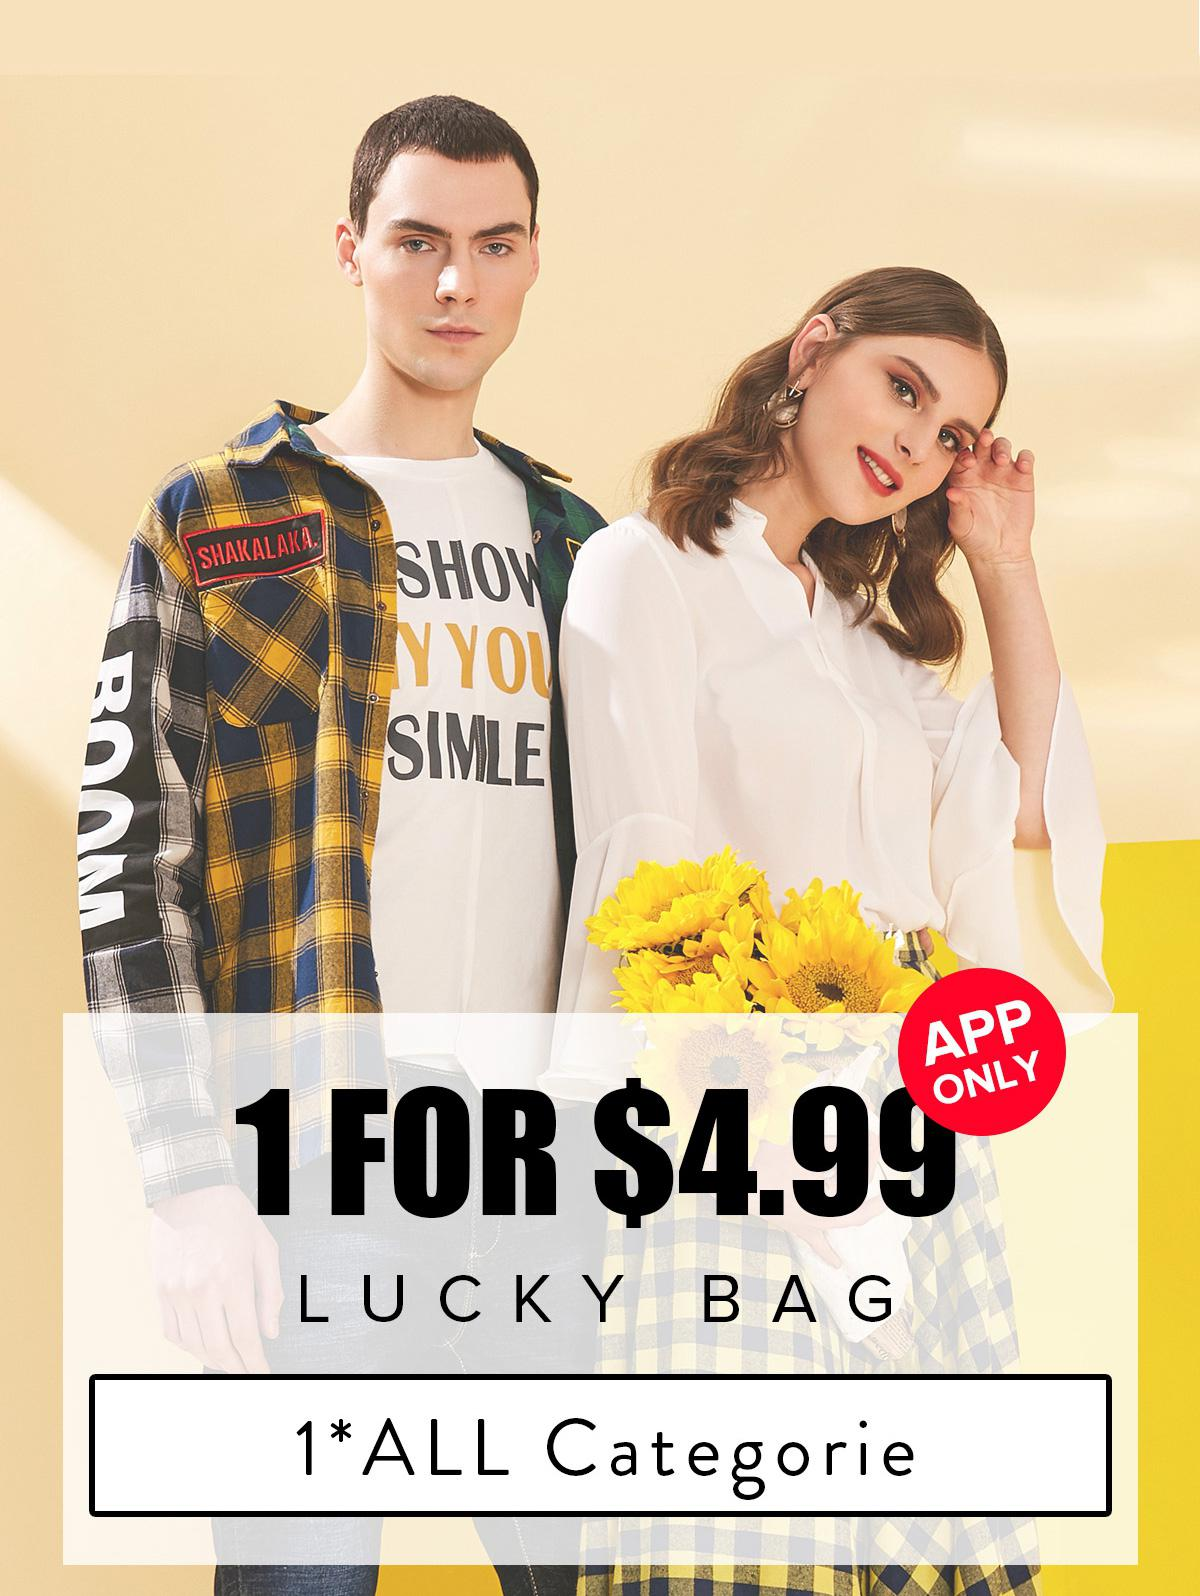 ZAFUL Lucky Bag - 1 Random Item Included - For All Categories - Limited Quantity